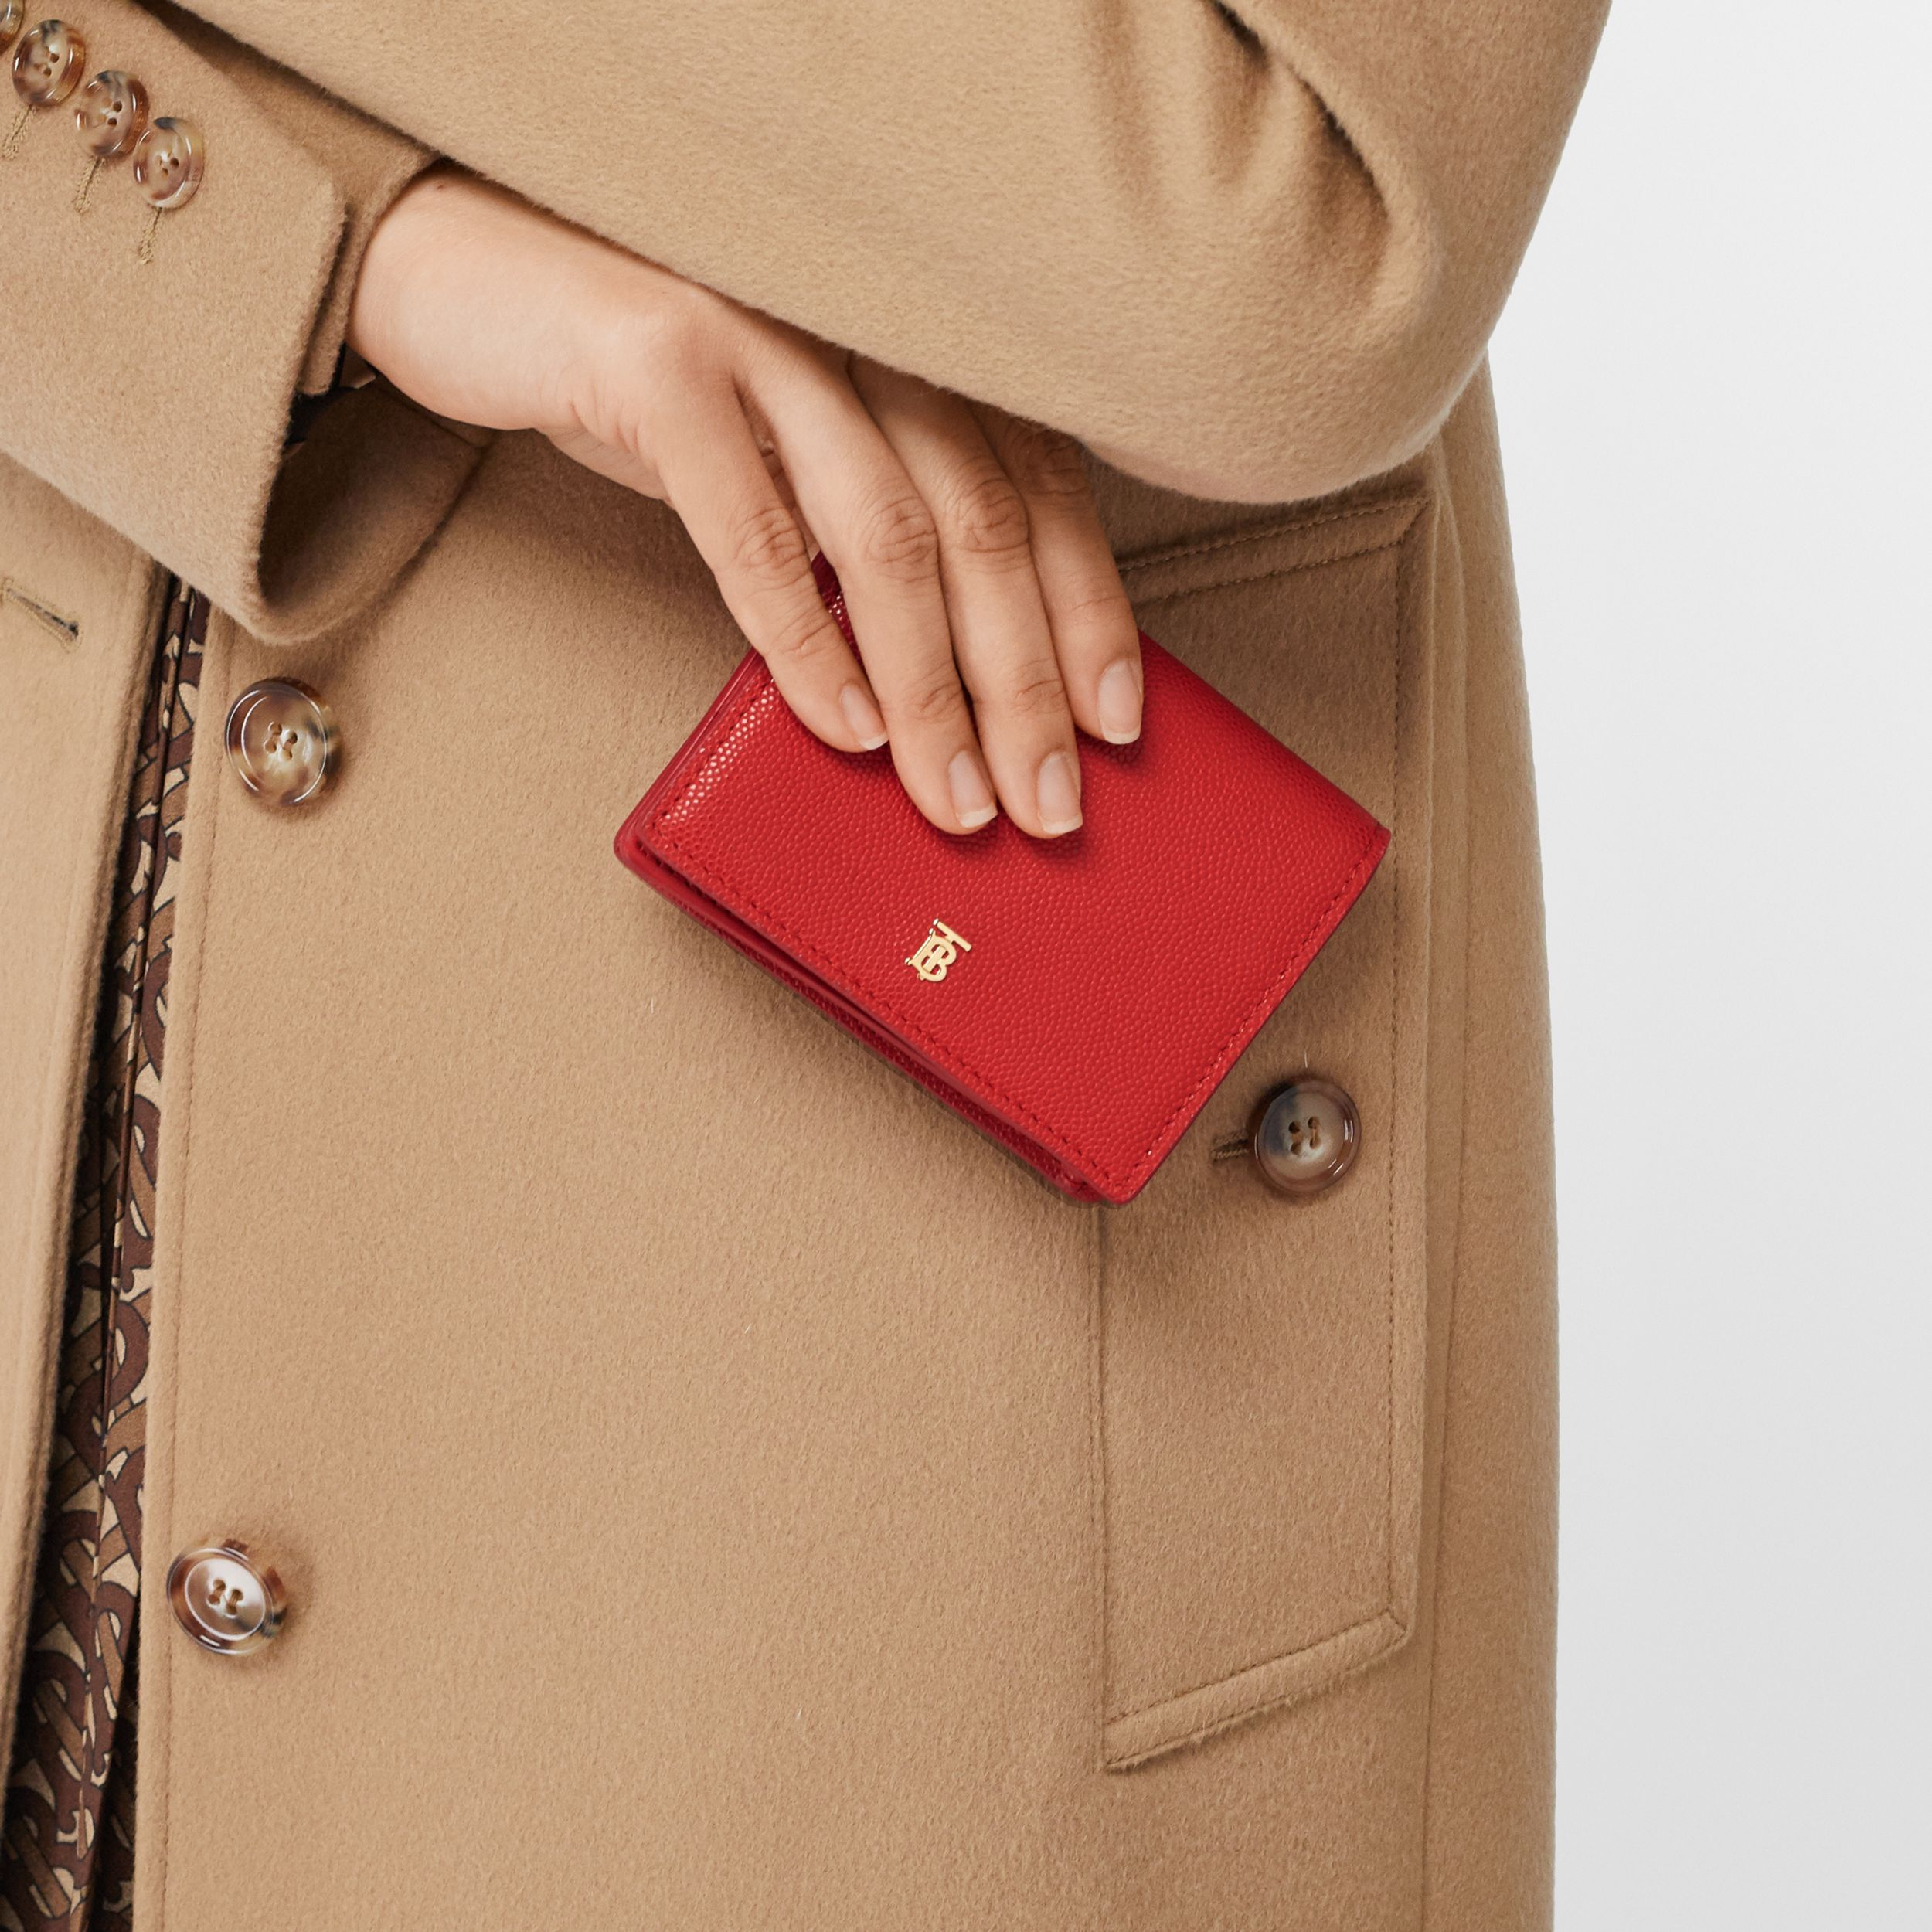 Grainy Leather Card Case with Detachable Strap in Bright Red - Women | Burberry - 3